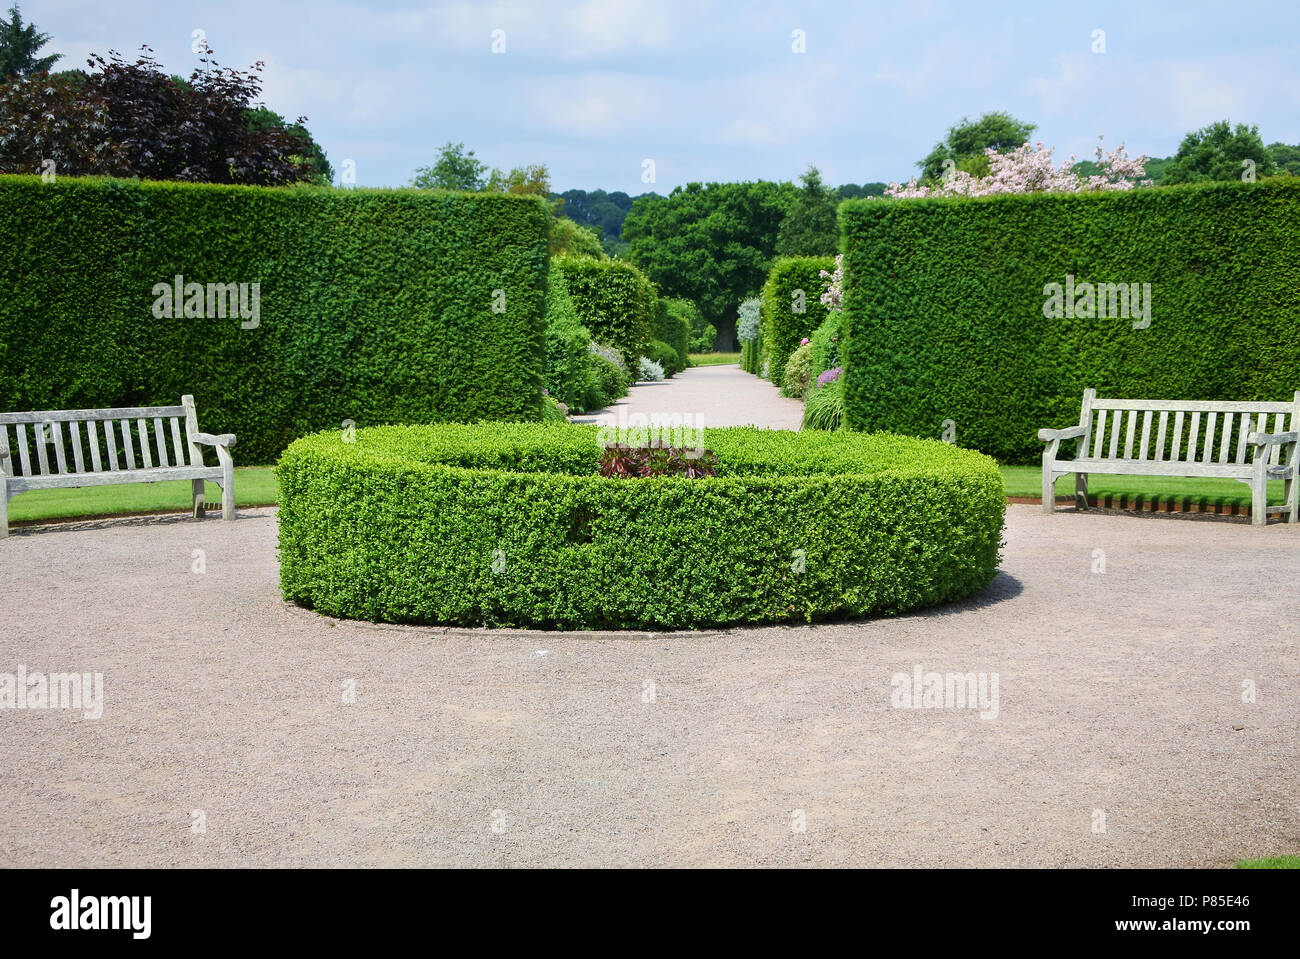 Yew hedging and seats at RHS Rosemoor Gardens, Devon, UK - John Gollop - Stock Image